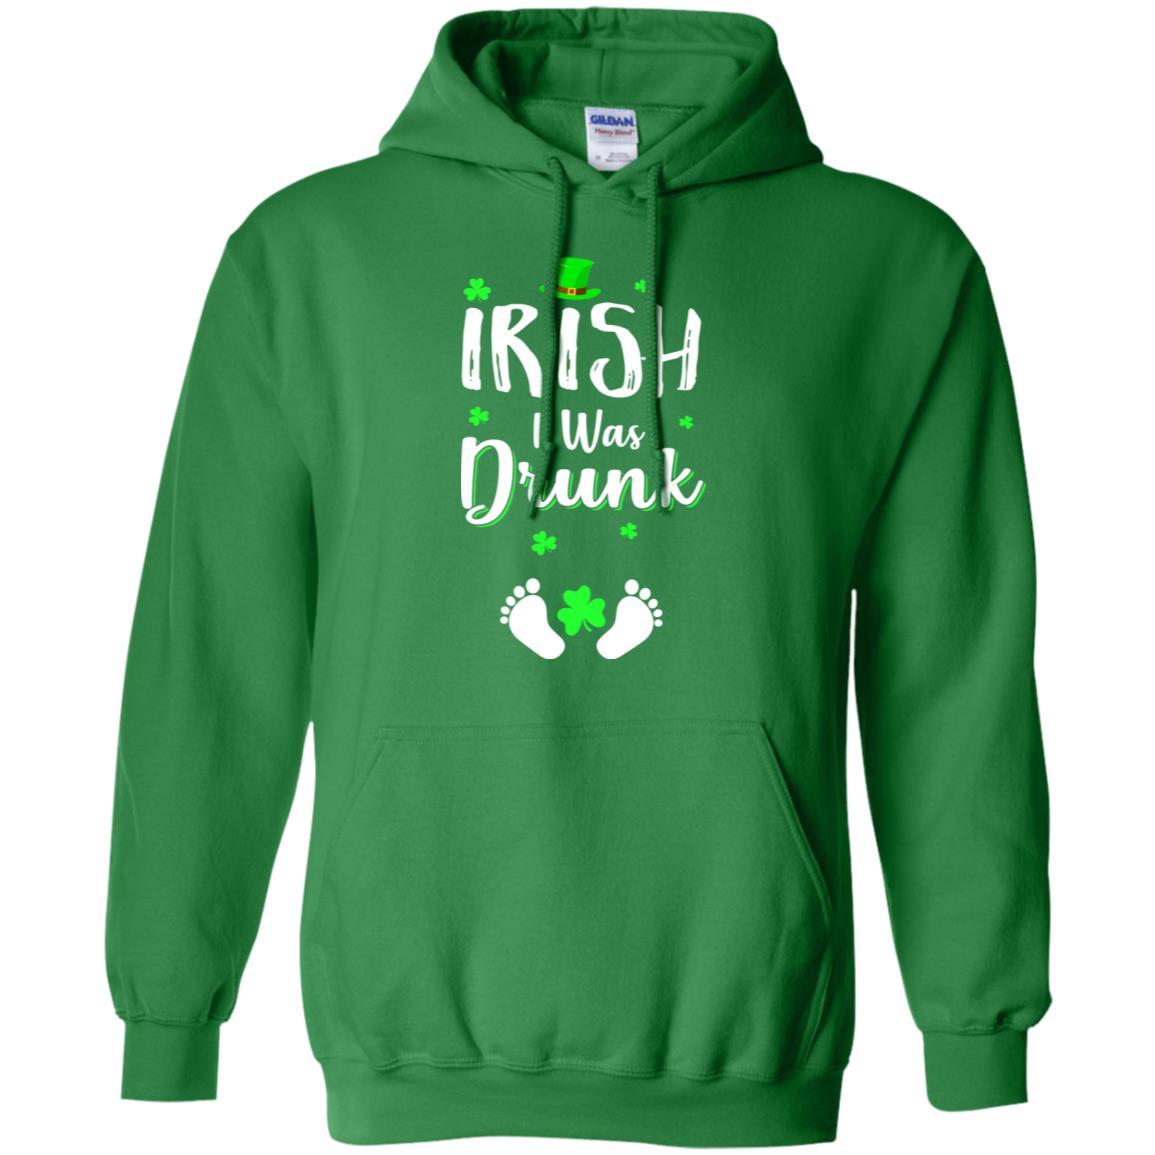 864d3df8 Funny St Patricks Day Pregnancy Announcement Mommy Shirt & Hoodie ...